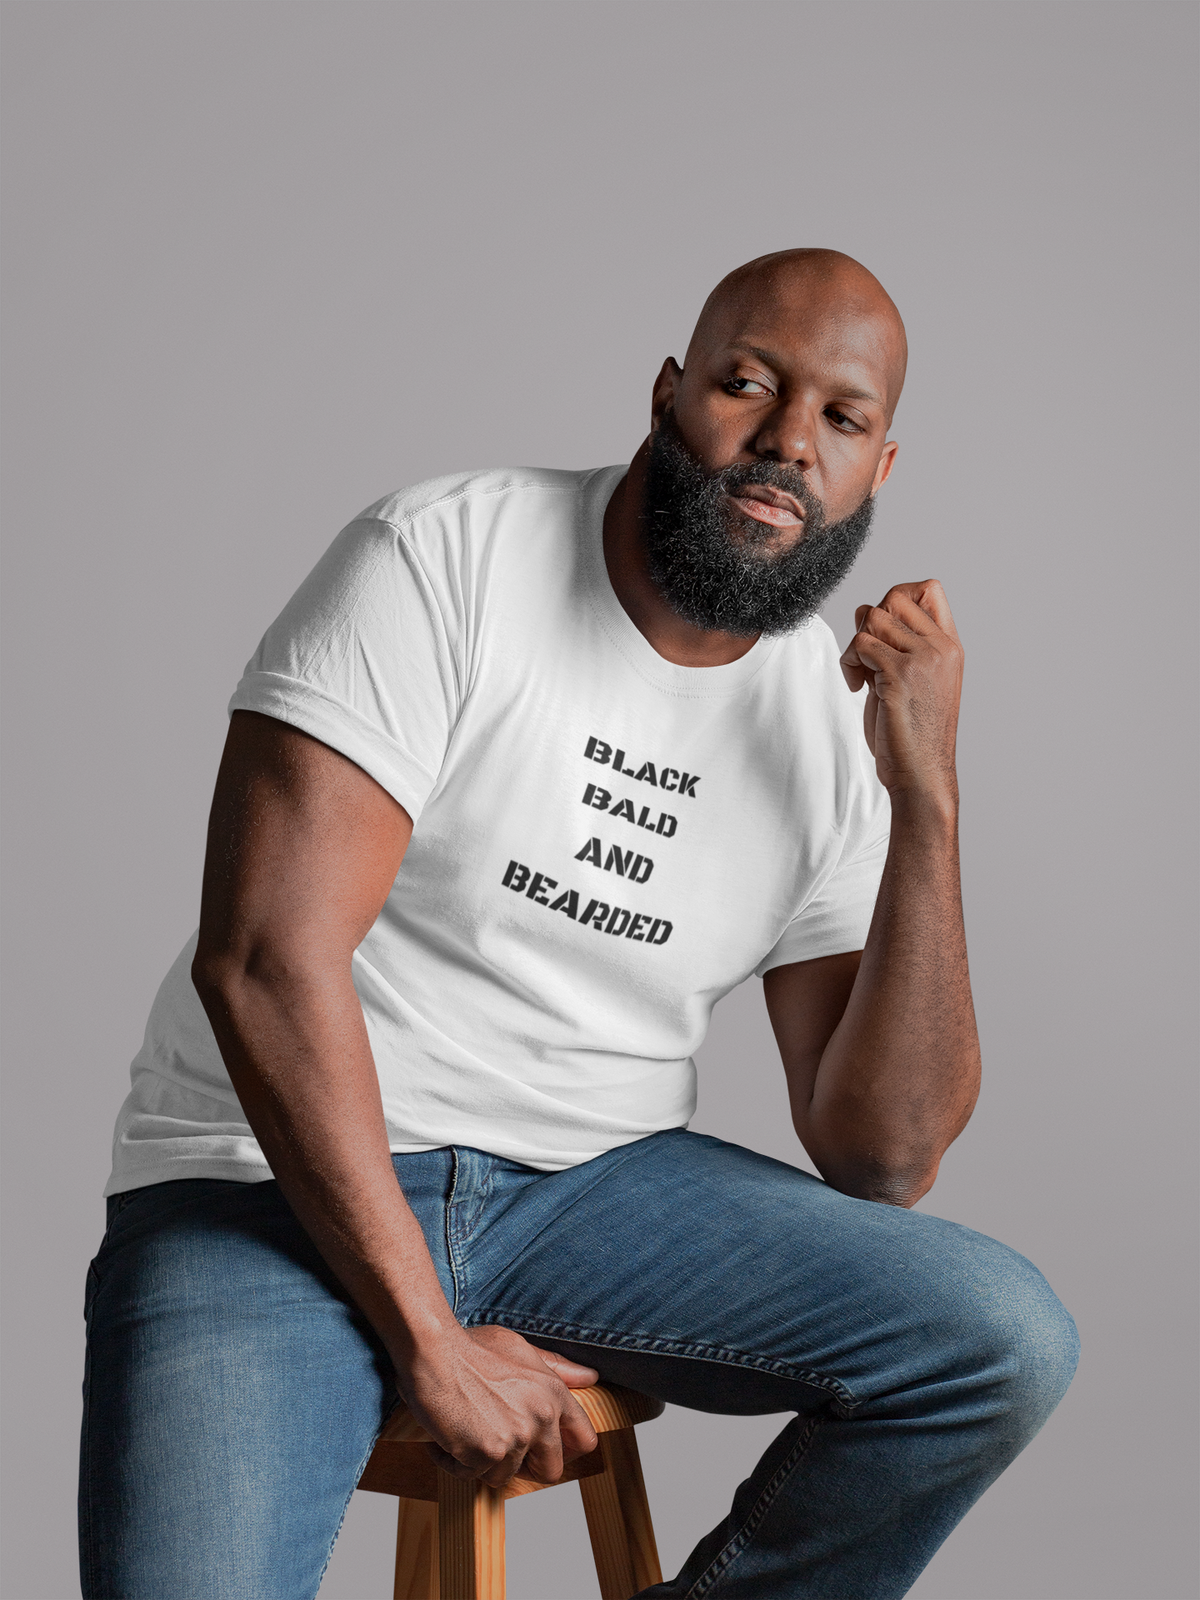 Image of Black bald and bearded tee